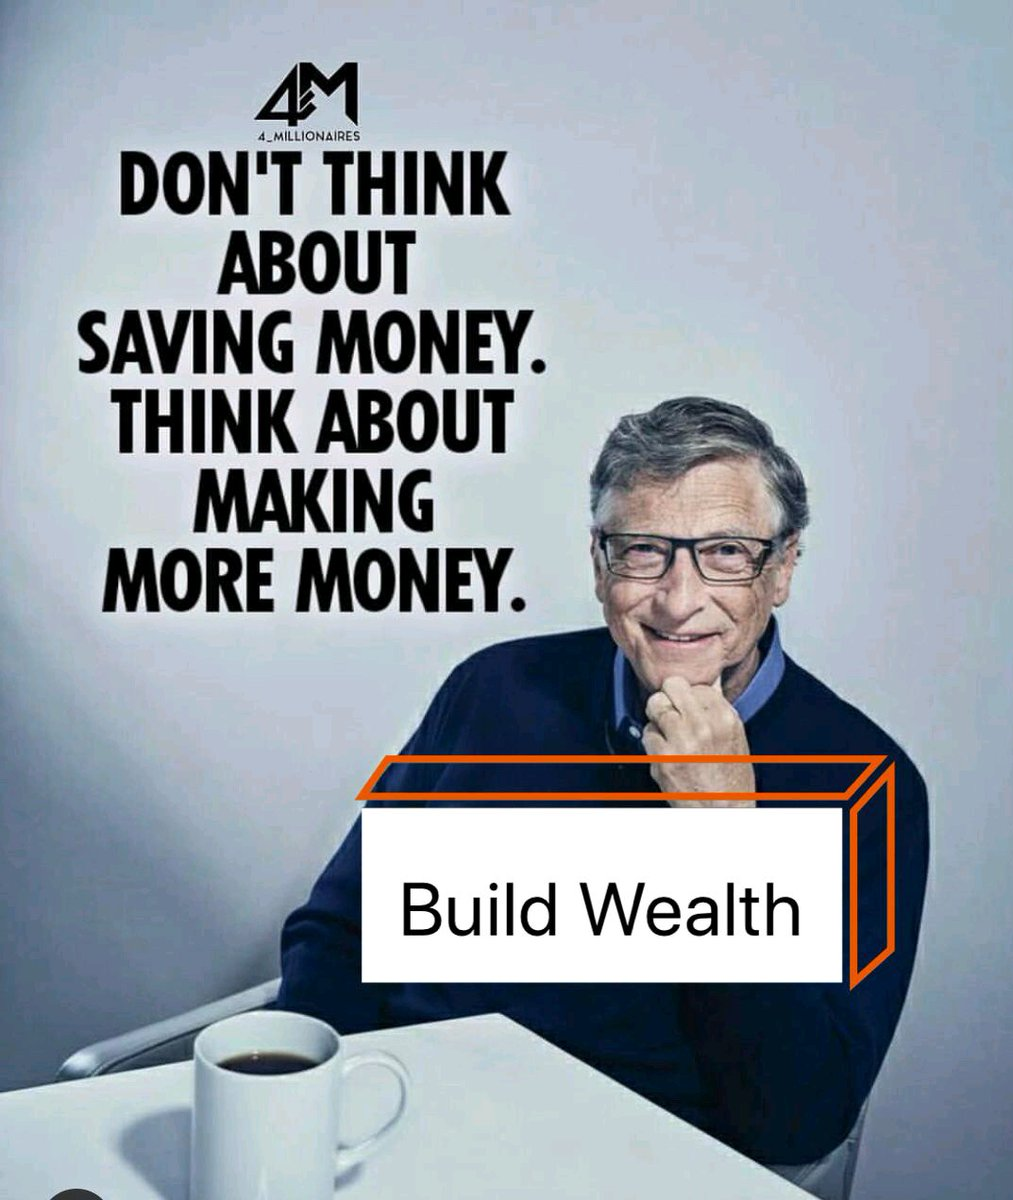 test Twitter Media - This simple change in mindset is how you build a legacy. Use money to make money!  #DailyMotivation #SelfImprovement #Success #GrowthHacking #Ambition #Mindset #Entrepreneur #Entrepreneurship #WontStop #Startup #Business #FridayFeeling #FridayMotivation #FridayThoughts #Friday https://t.co/iCxf18eqEO